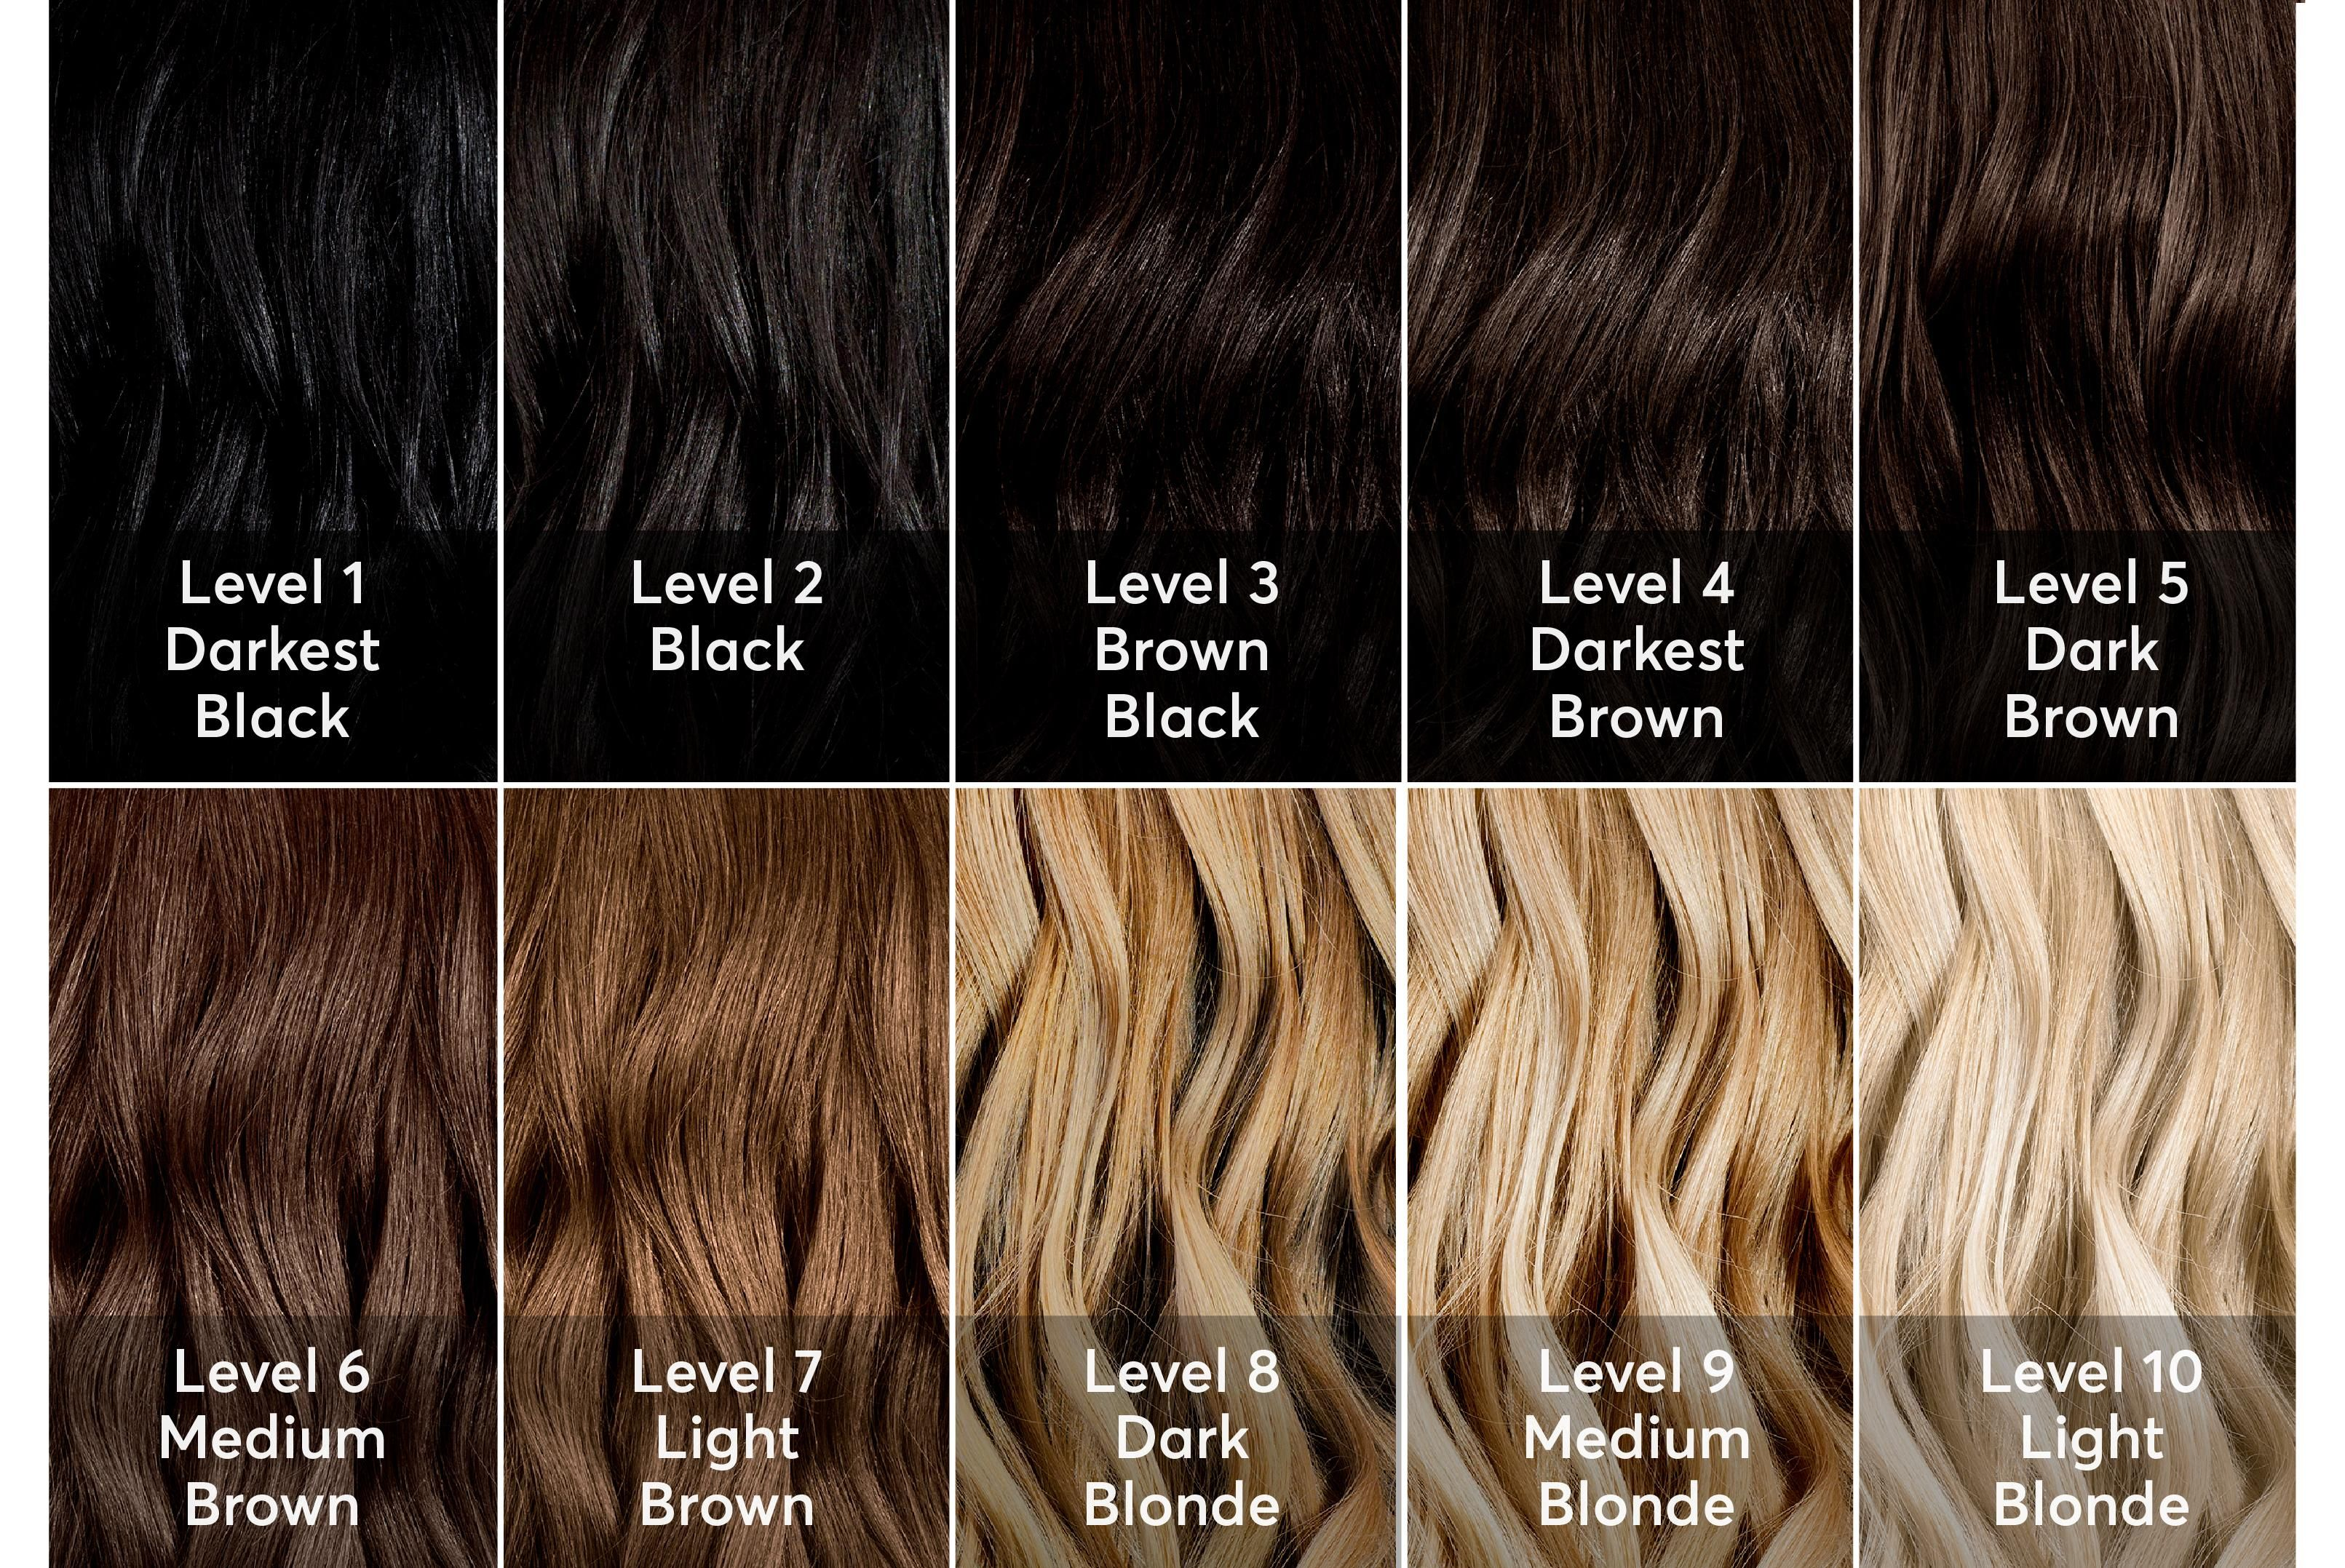 Brunette Hair Color Choices A Hair Color Chart To Get Glamorous Results At Home Blonde Hair Color Chart Ion Hair Color Chart Brown Hair Color Chart